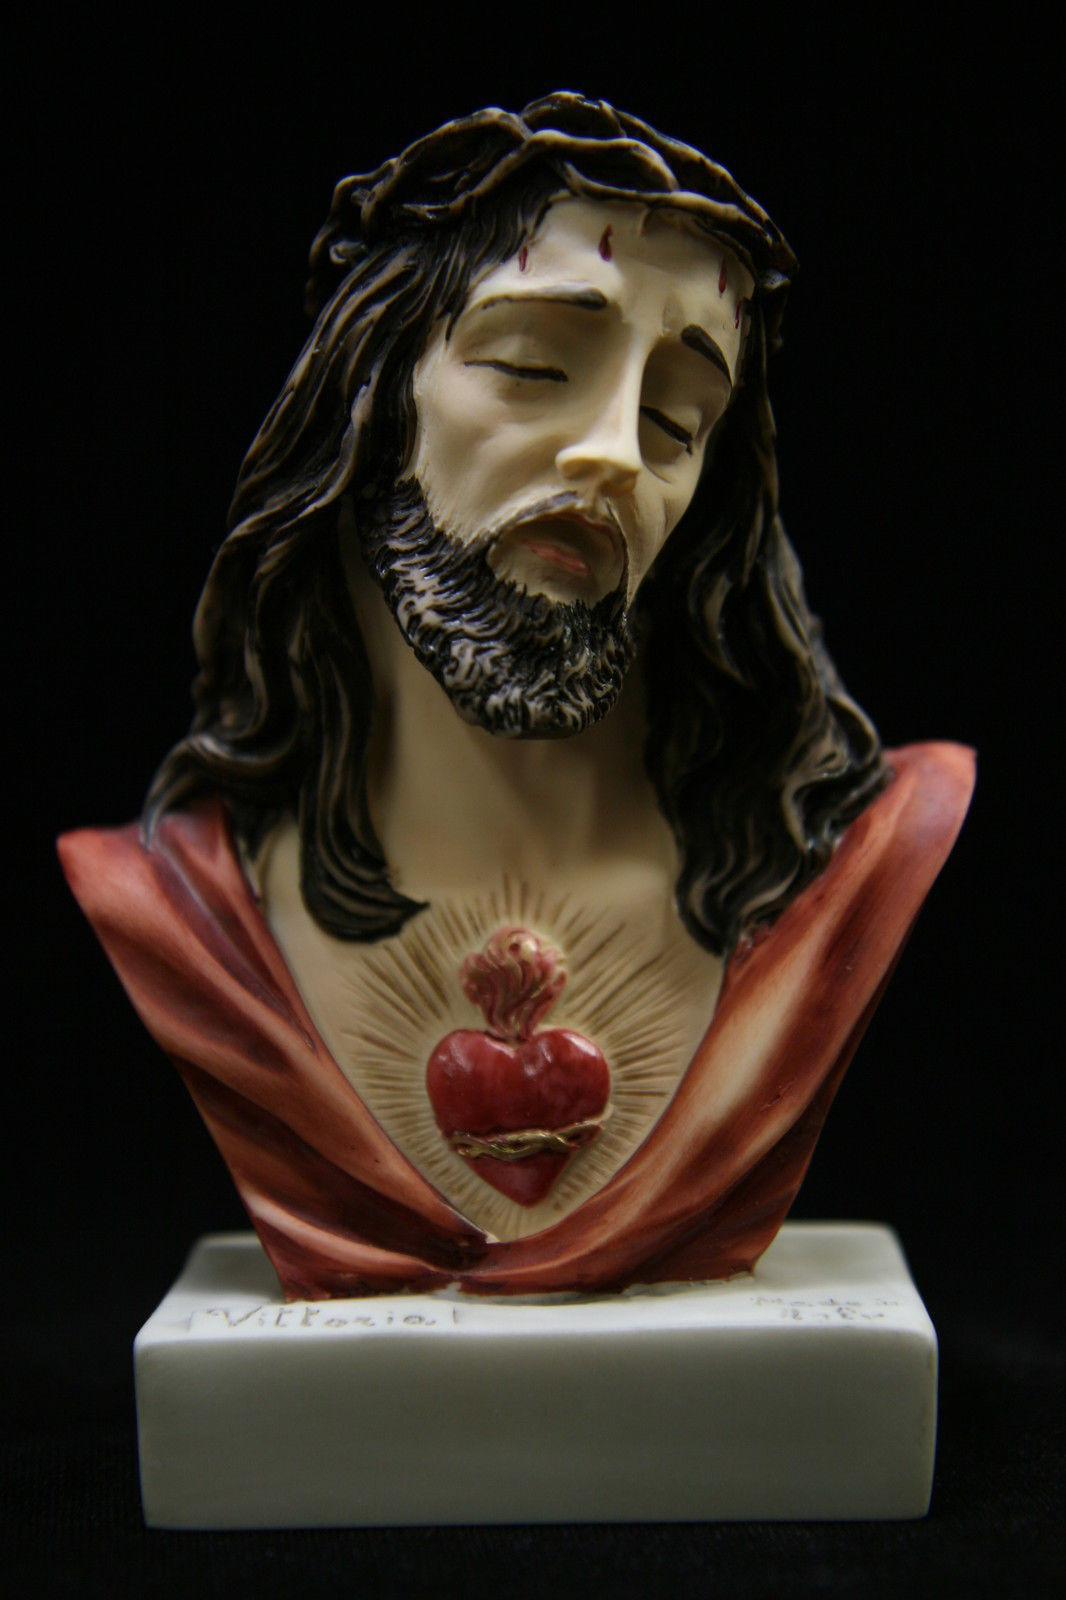 Bust of Jesus Christ Sacred Heart Italian Statue Sculpture Figurine Made Italy - $34.95